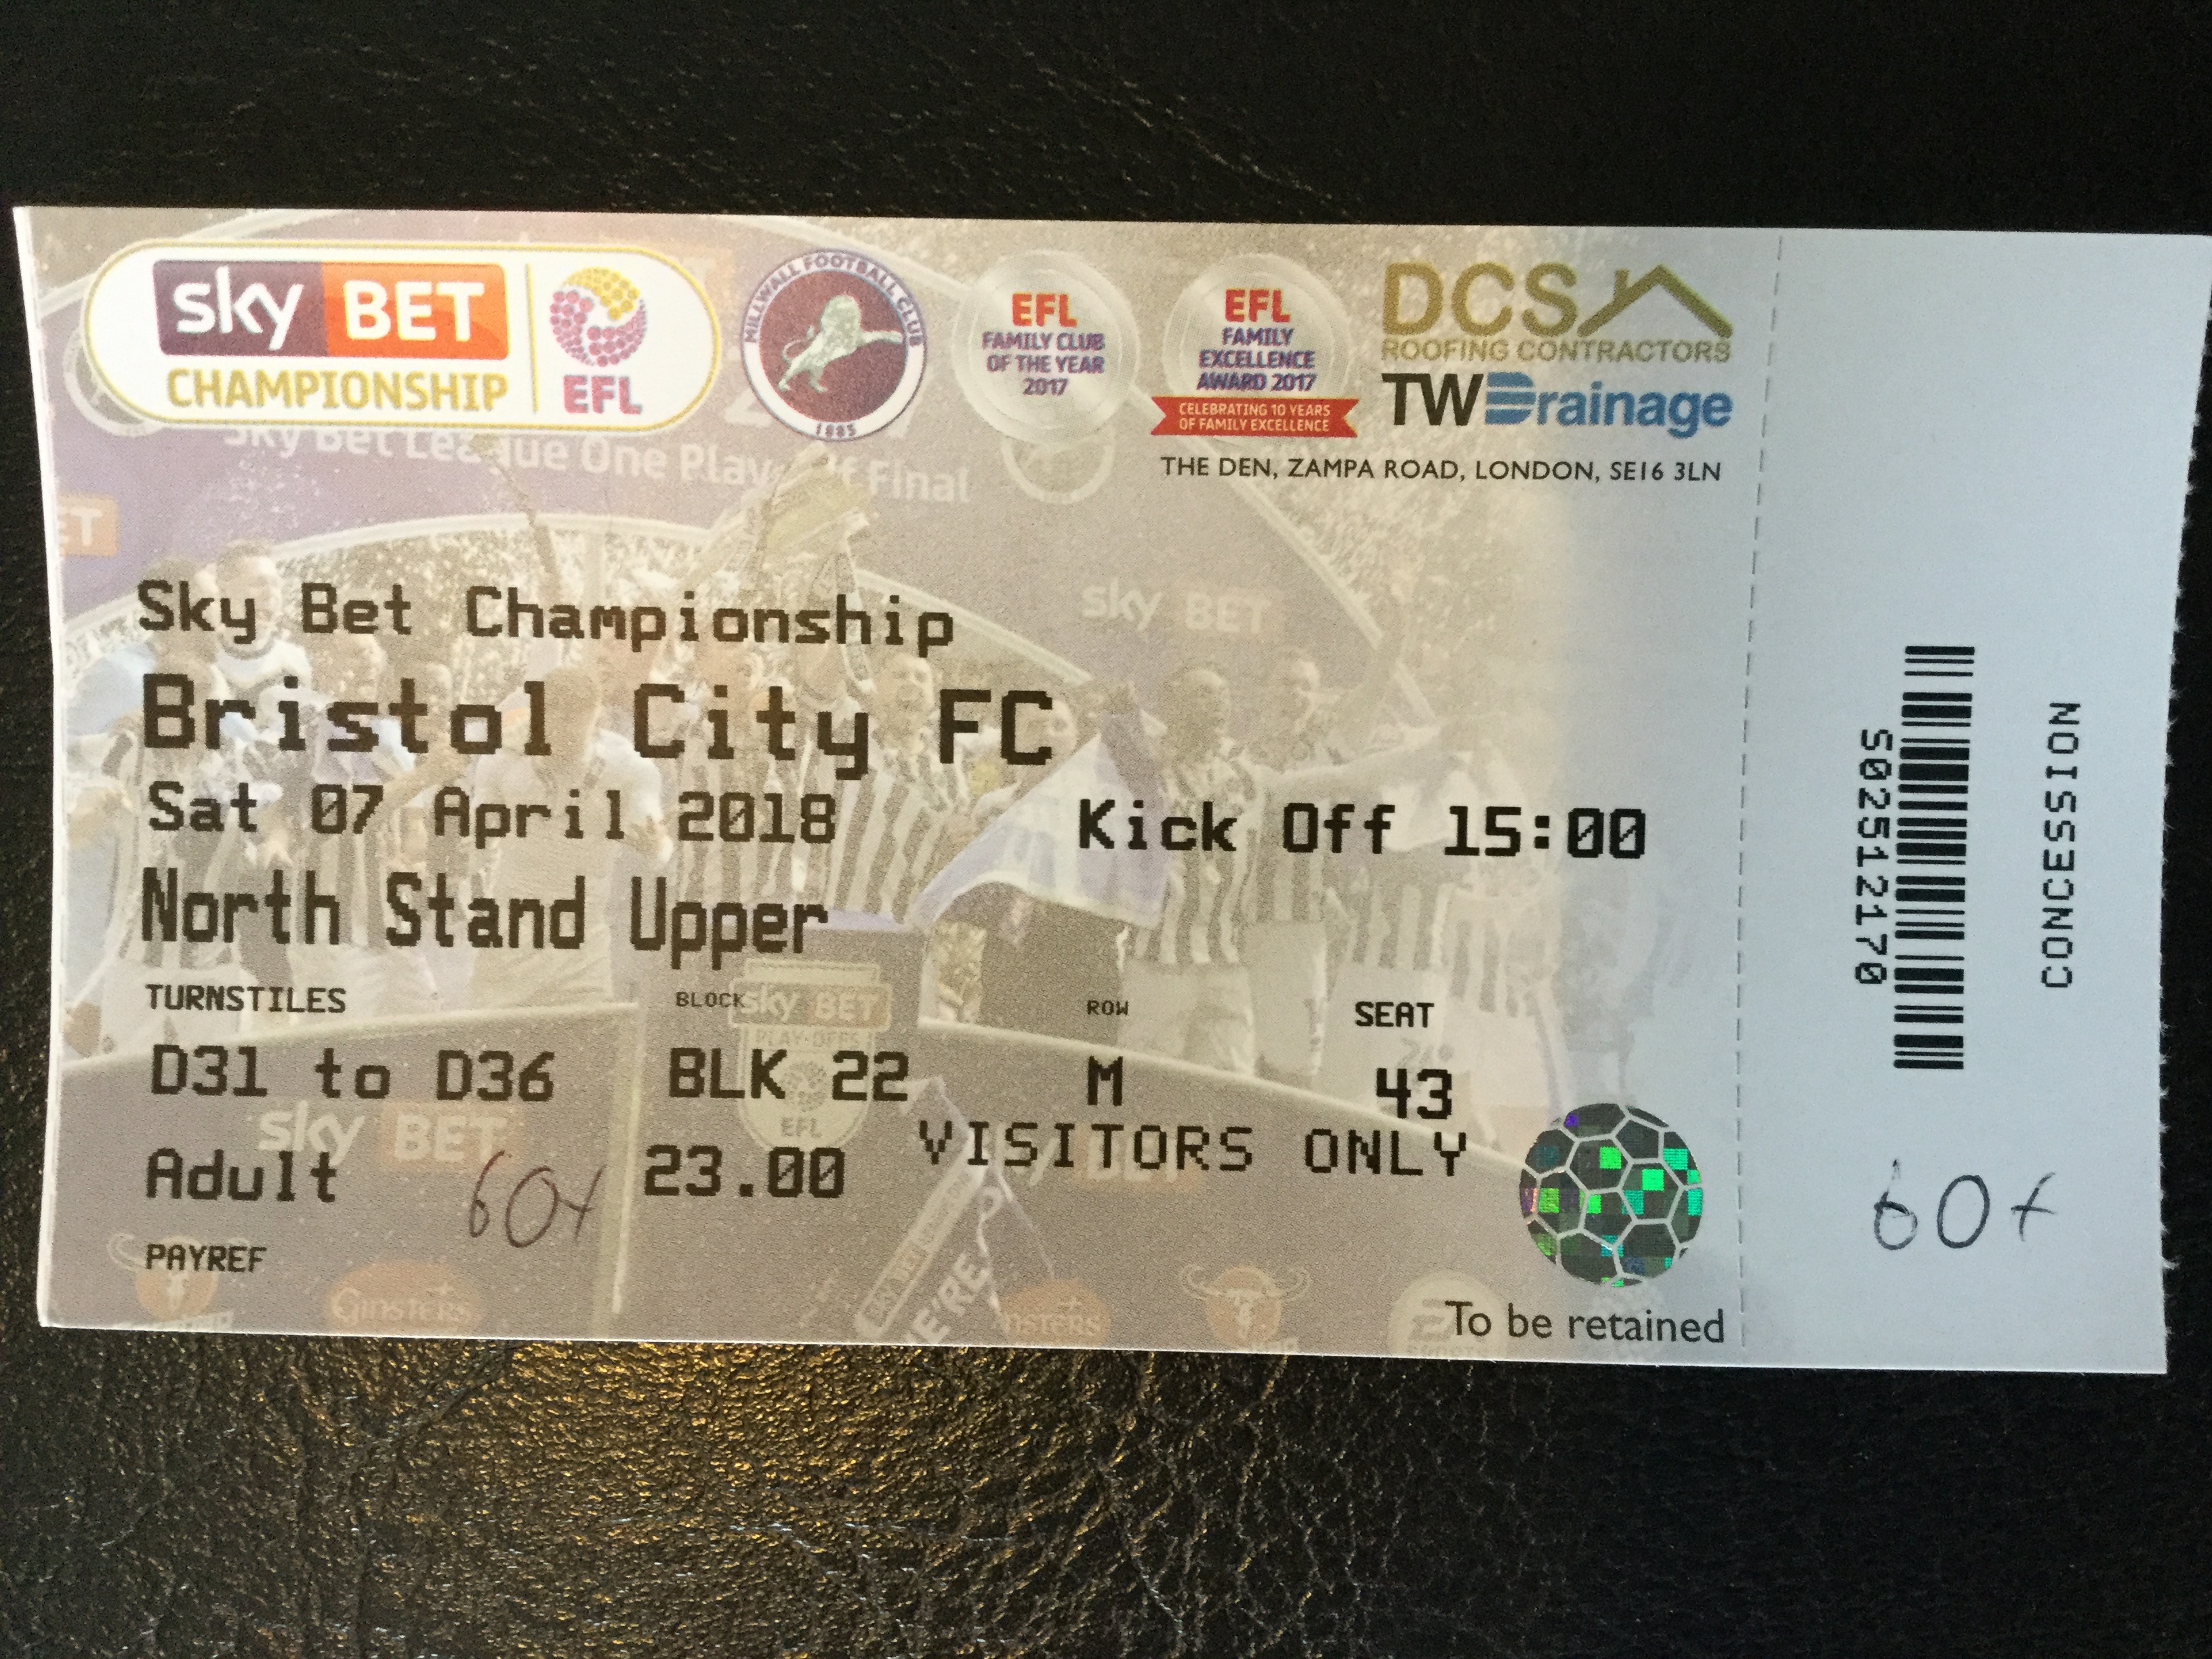 Millwall v Bristol City 07-04-18 Ticket